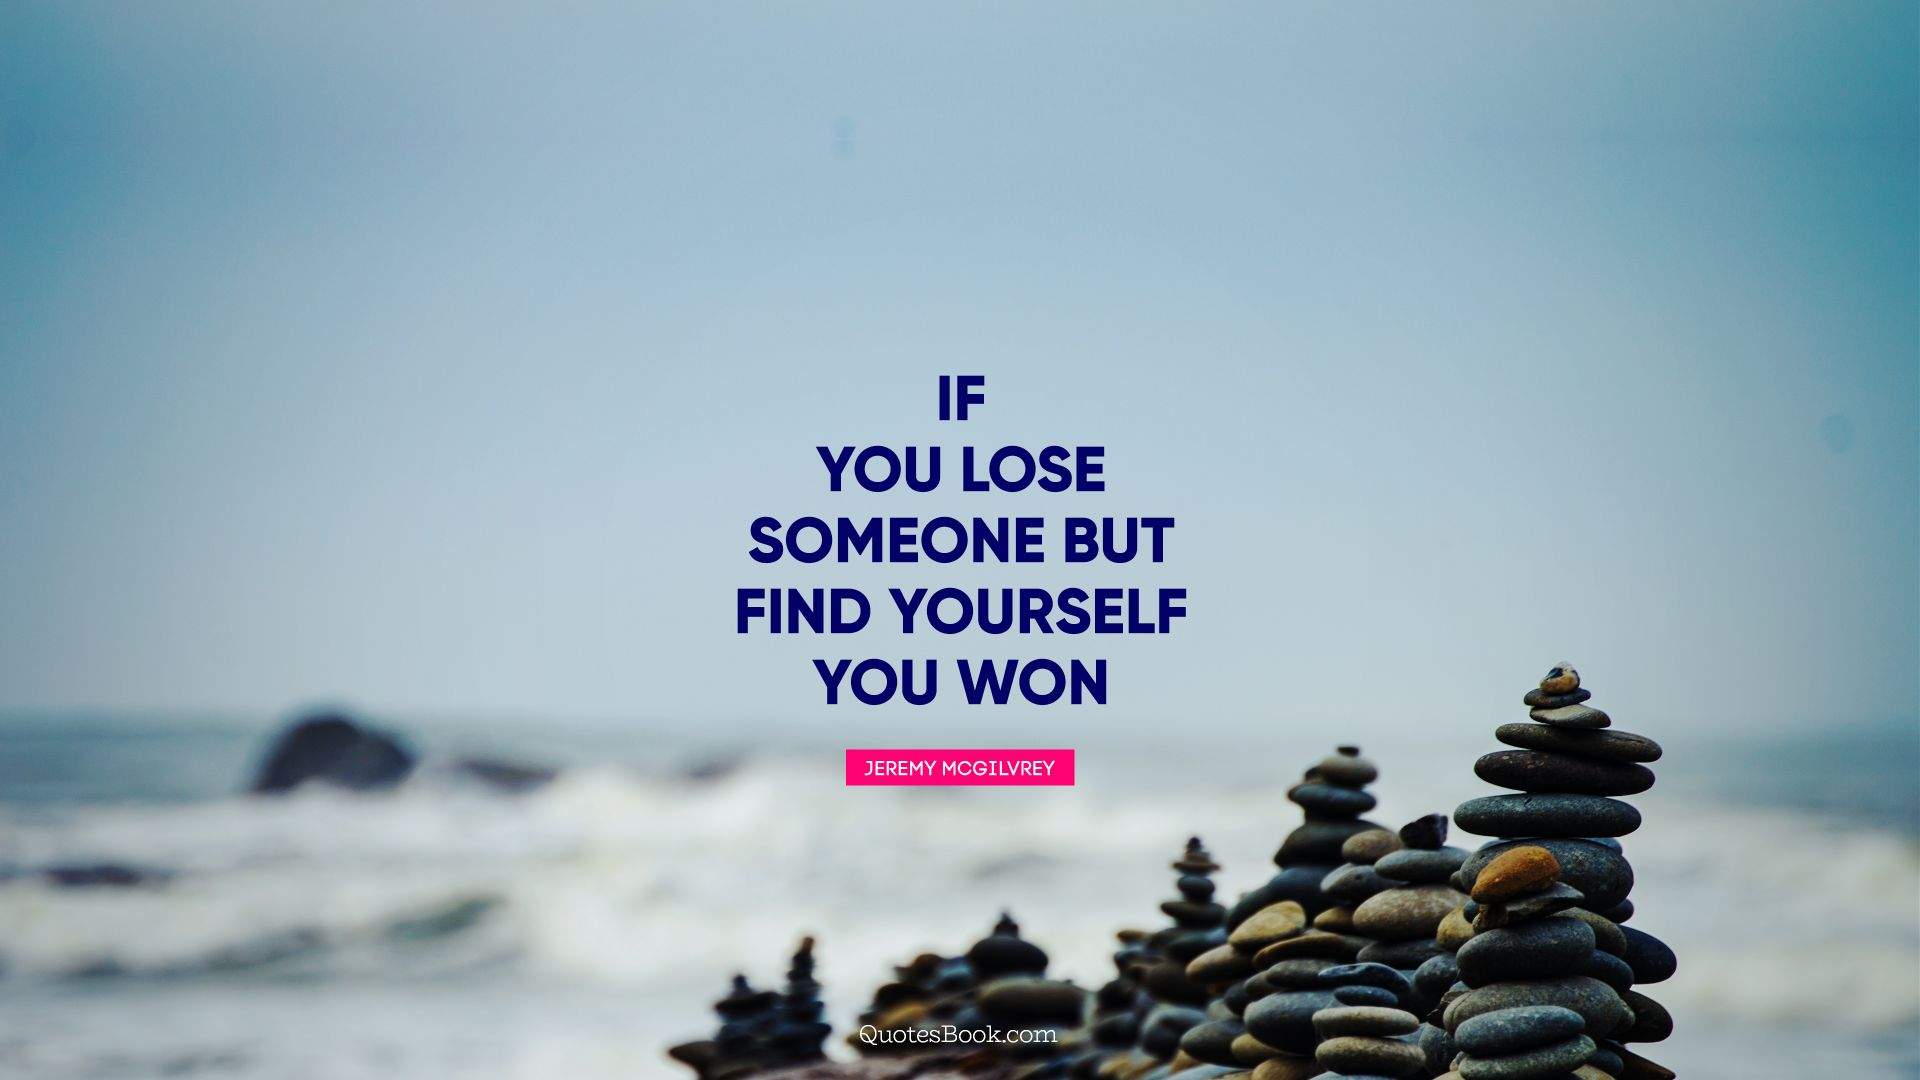 If you lose someone but find yourself you won. - Quote by Jeremy Mcgilvrey